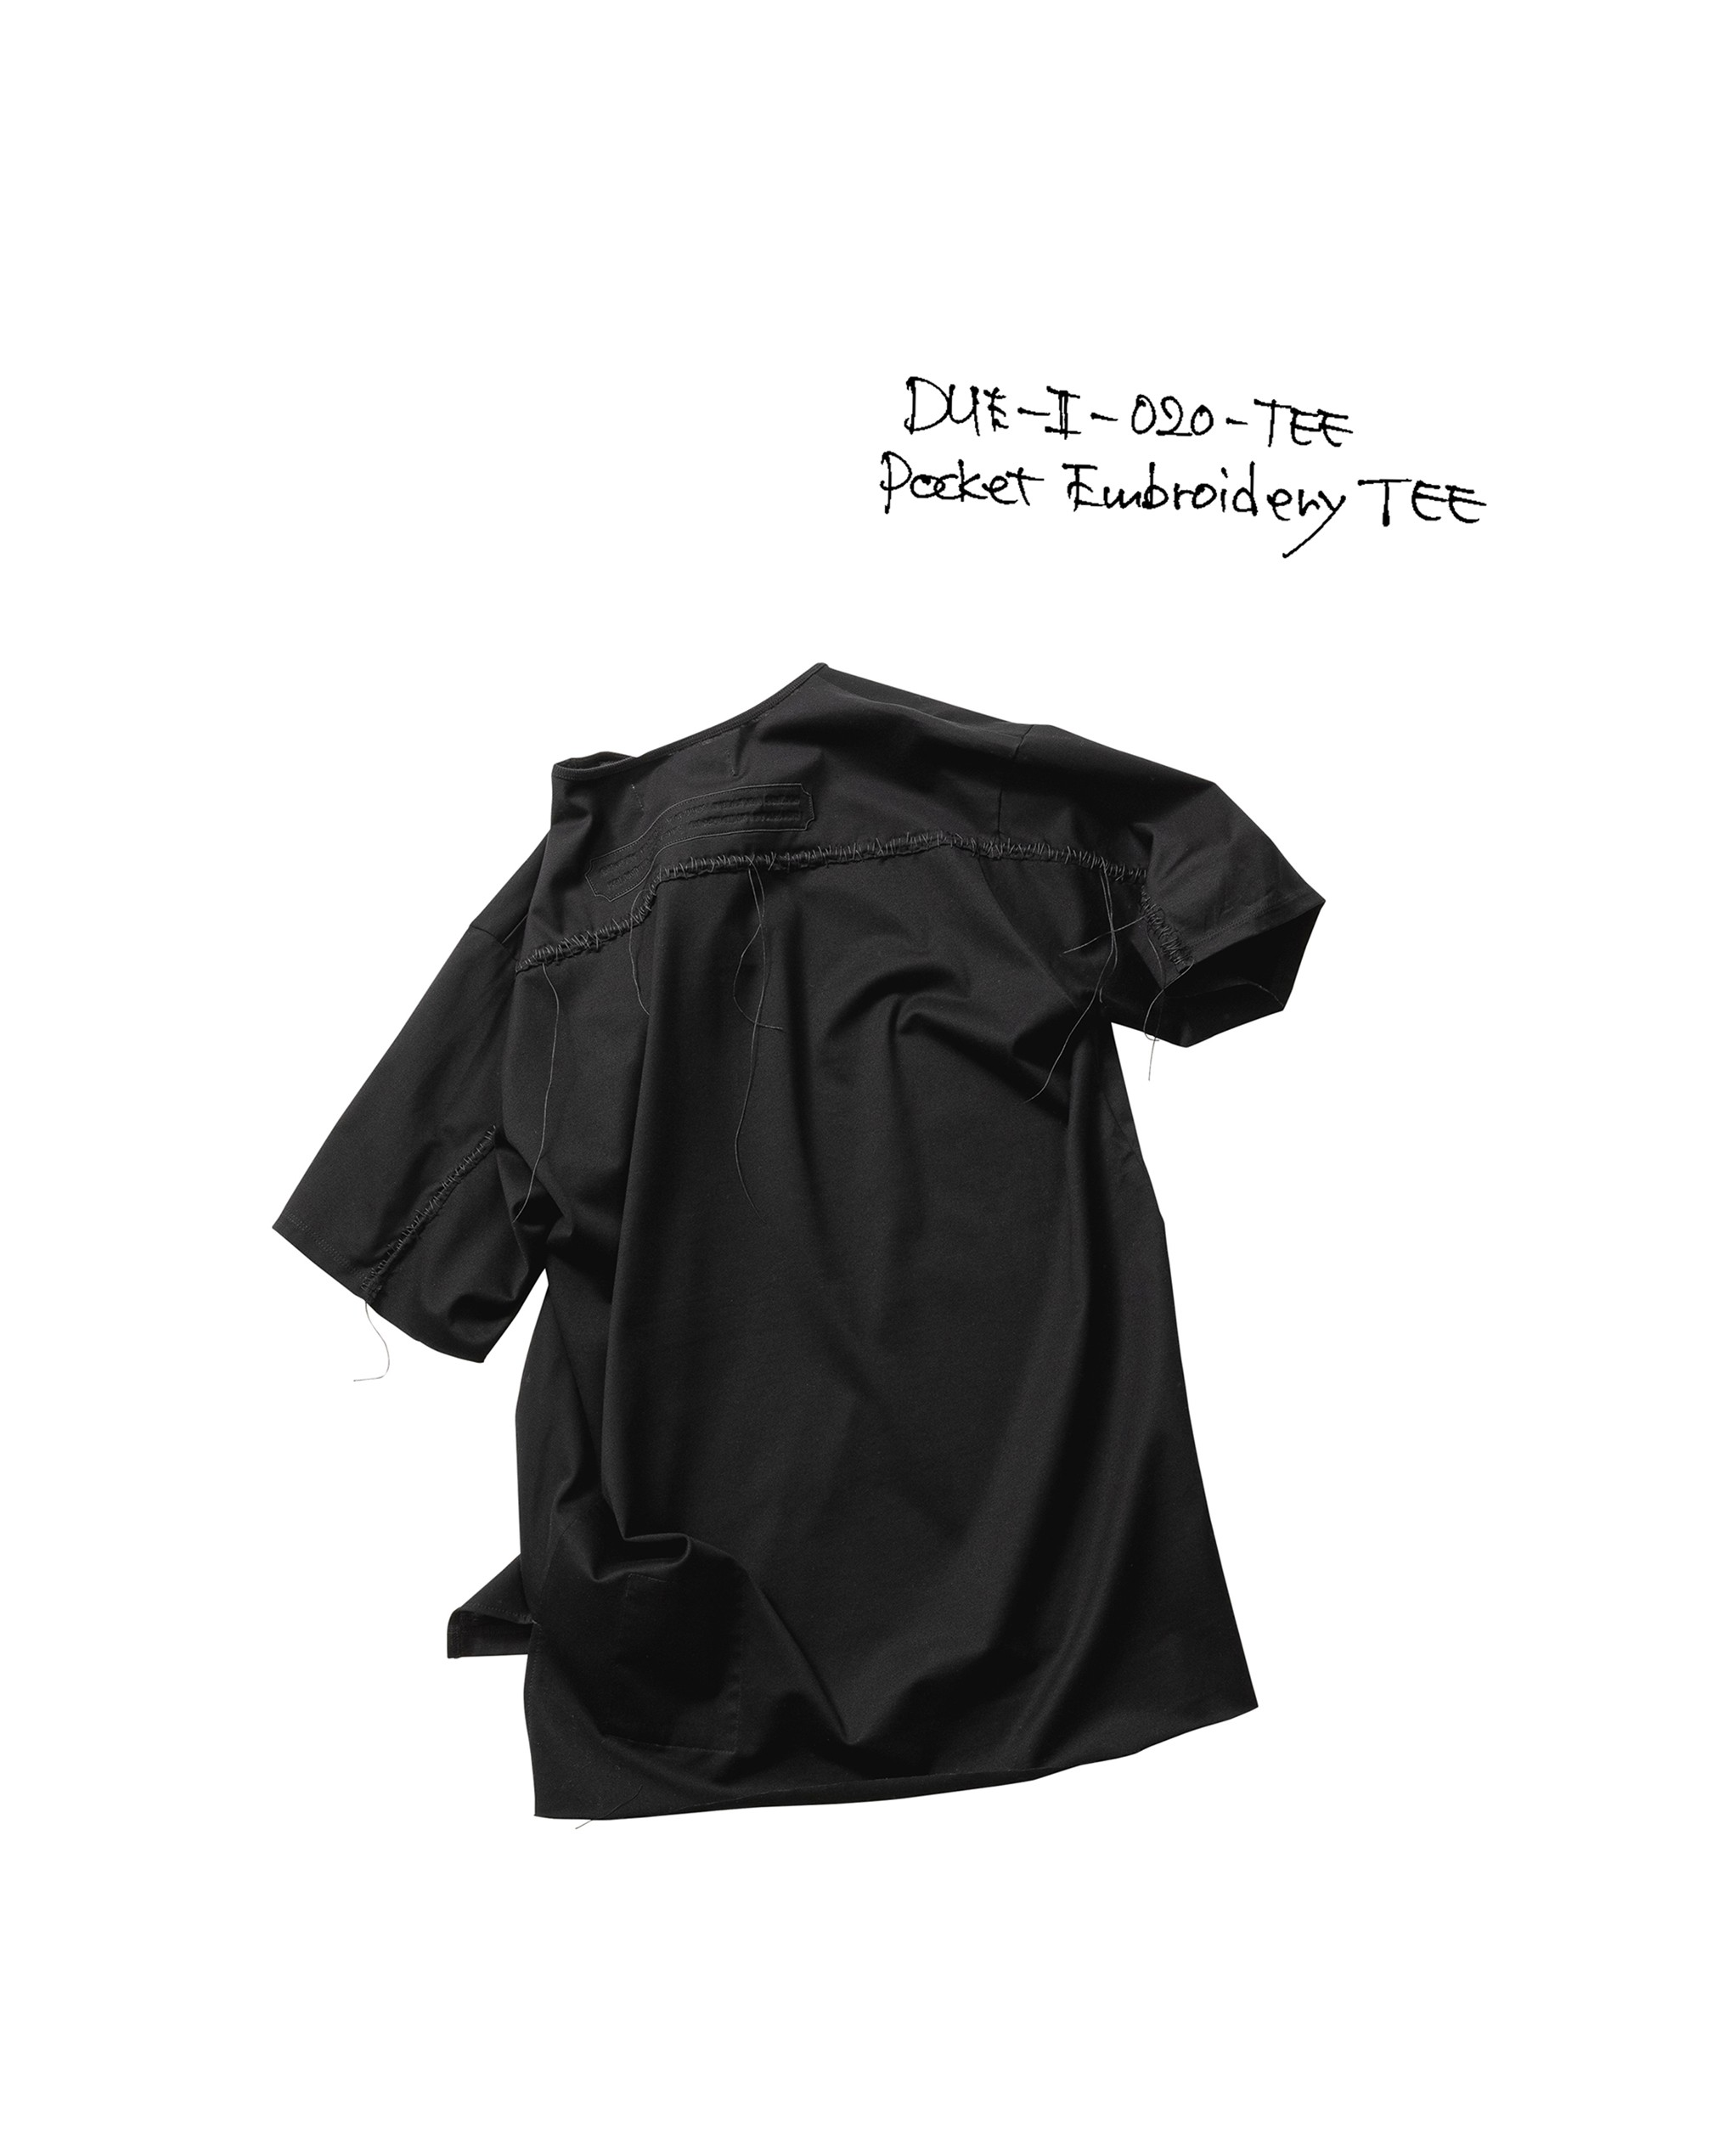 21SS DUE-Ⅱ-020-TEE-BLK POCKT-EMBROIDERY TEE